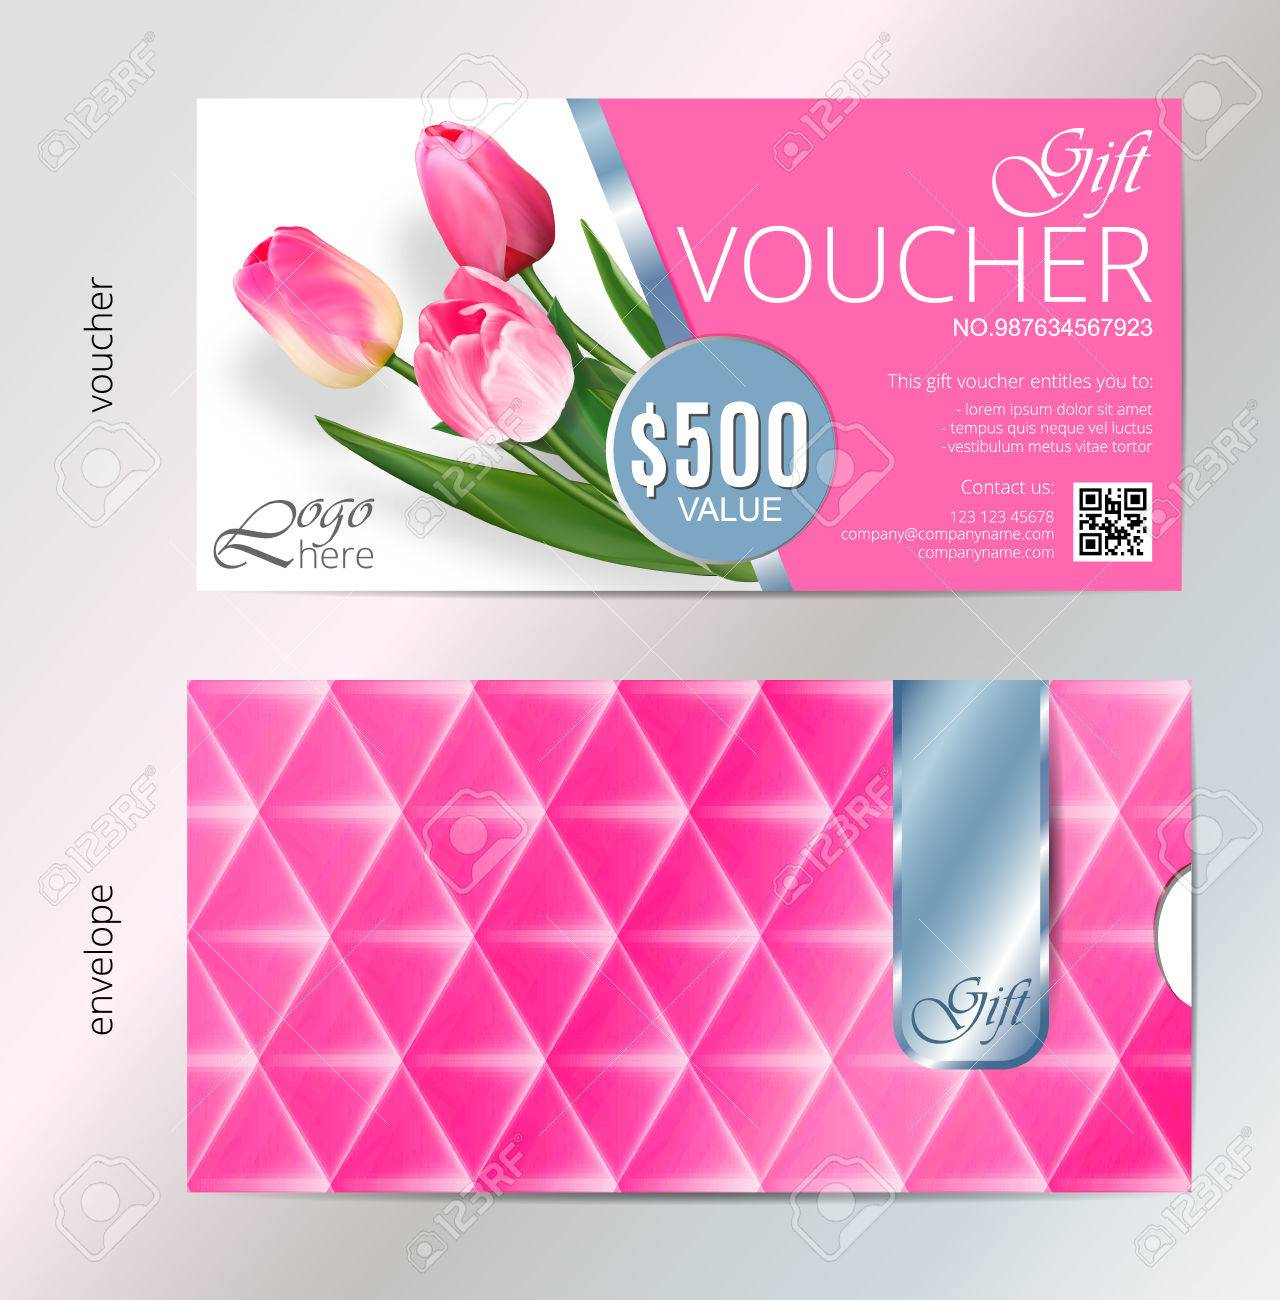 Gift voucher template with pink tulip flowers vector abstract gift voucher template with pink tulip flowers vector abstract background concept for boutique yelopaper Gallery